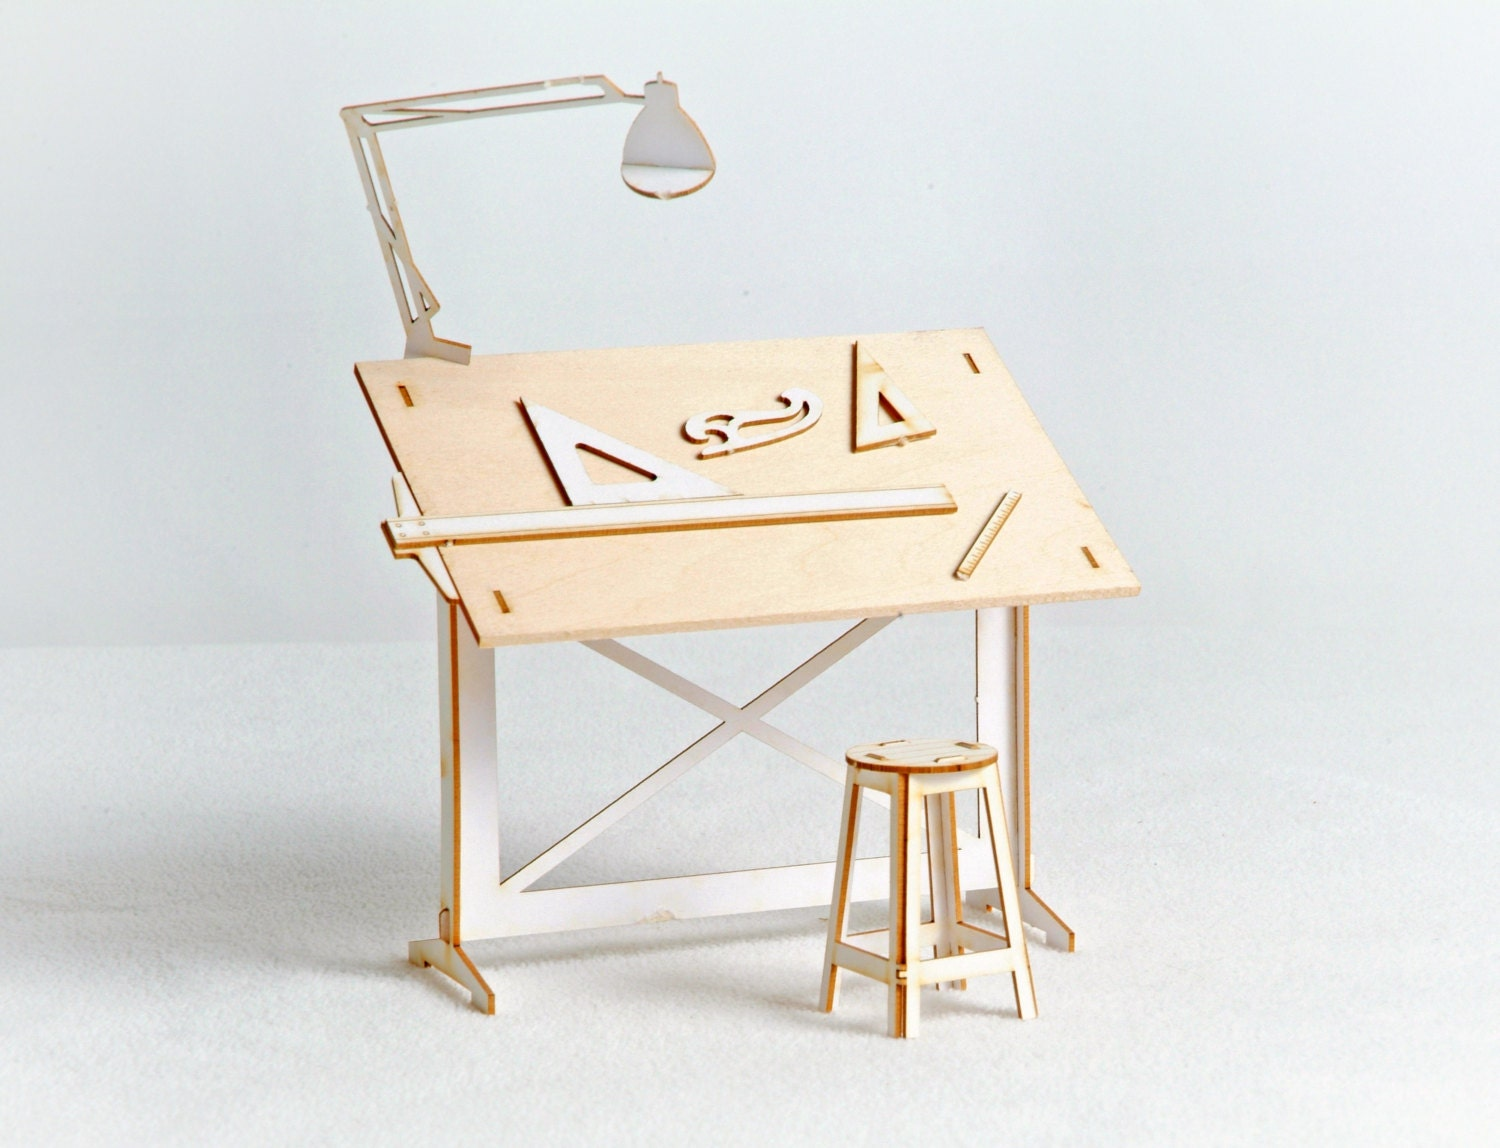 Miniature drafting table model kit with real wood tabletop for Table utensils